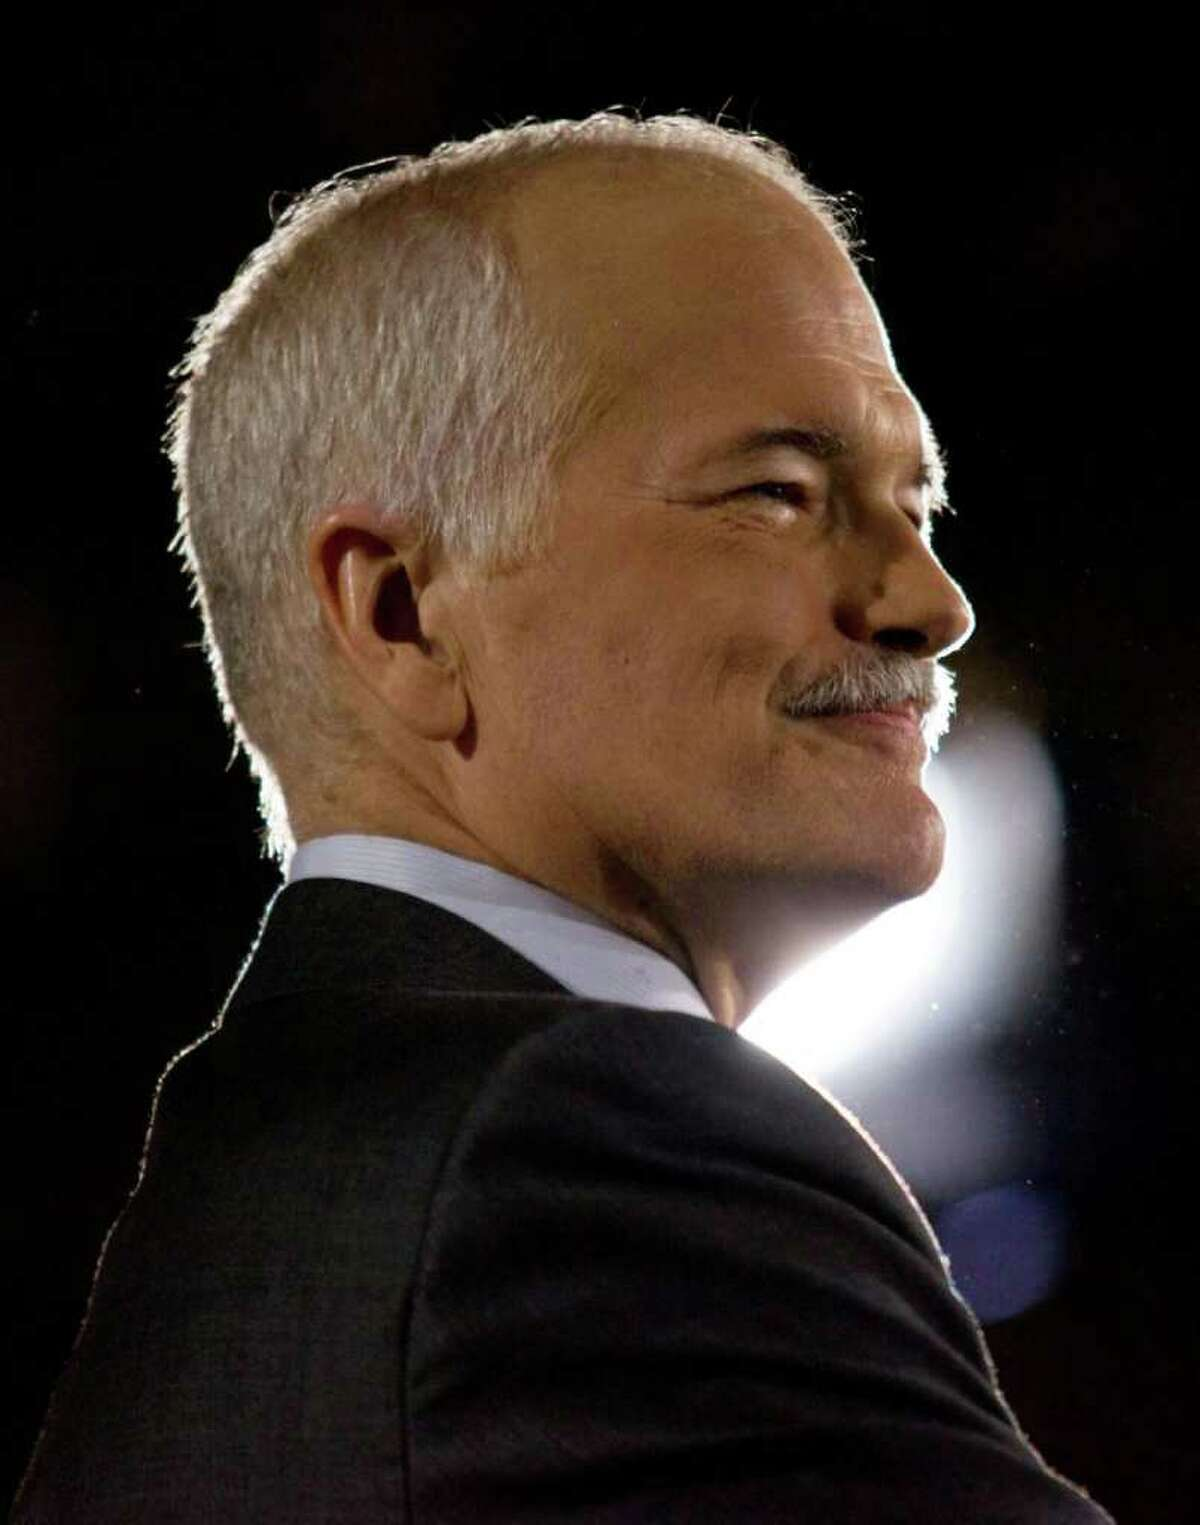 In this May 2, 2011 photo, NDP Leader Jack Layton speaks to supporters at the NDP headquarters in Toronto. Layton died Monday, Aug. 22, 2011, after a battle with cancer. (AP Photo/The Canadian Press, Chris Young)